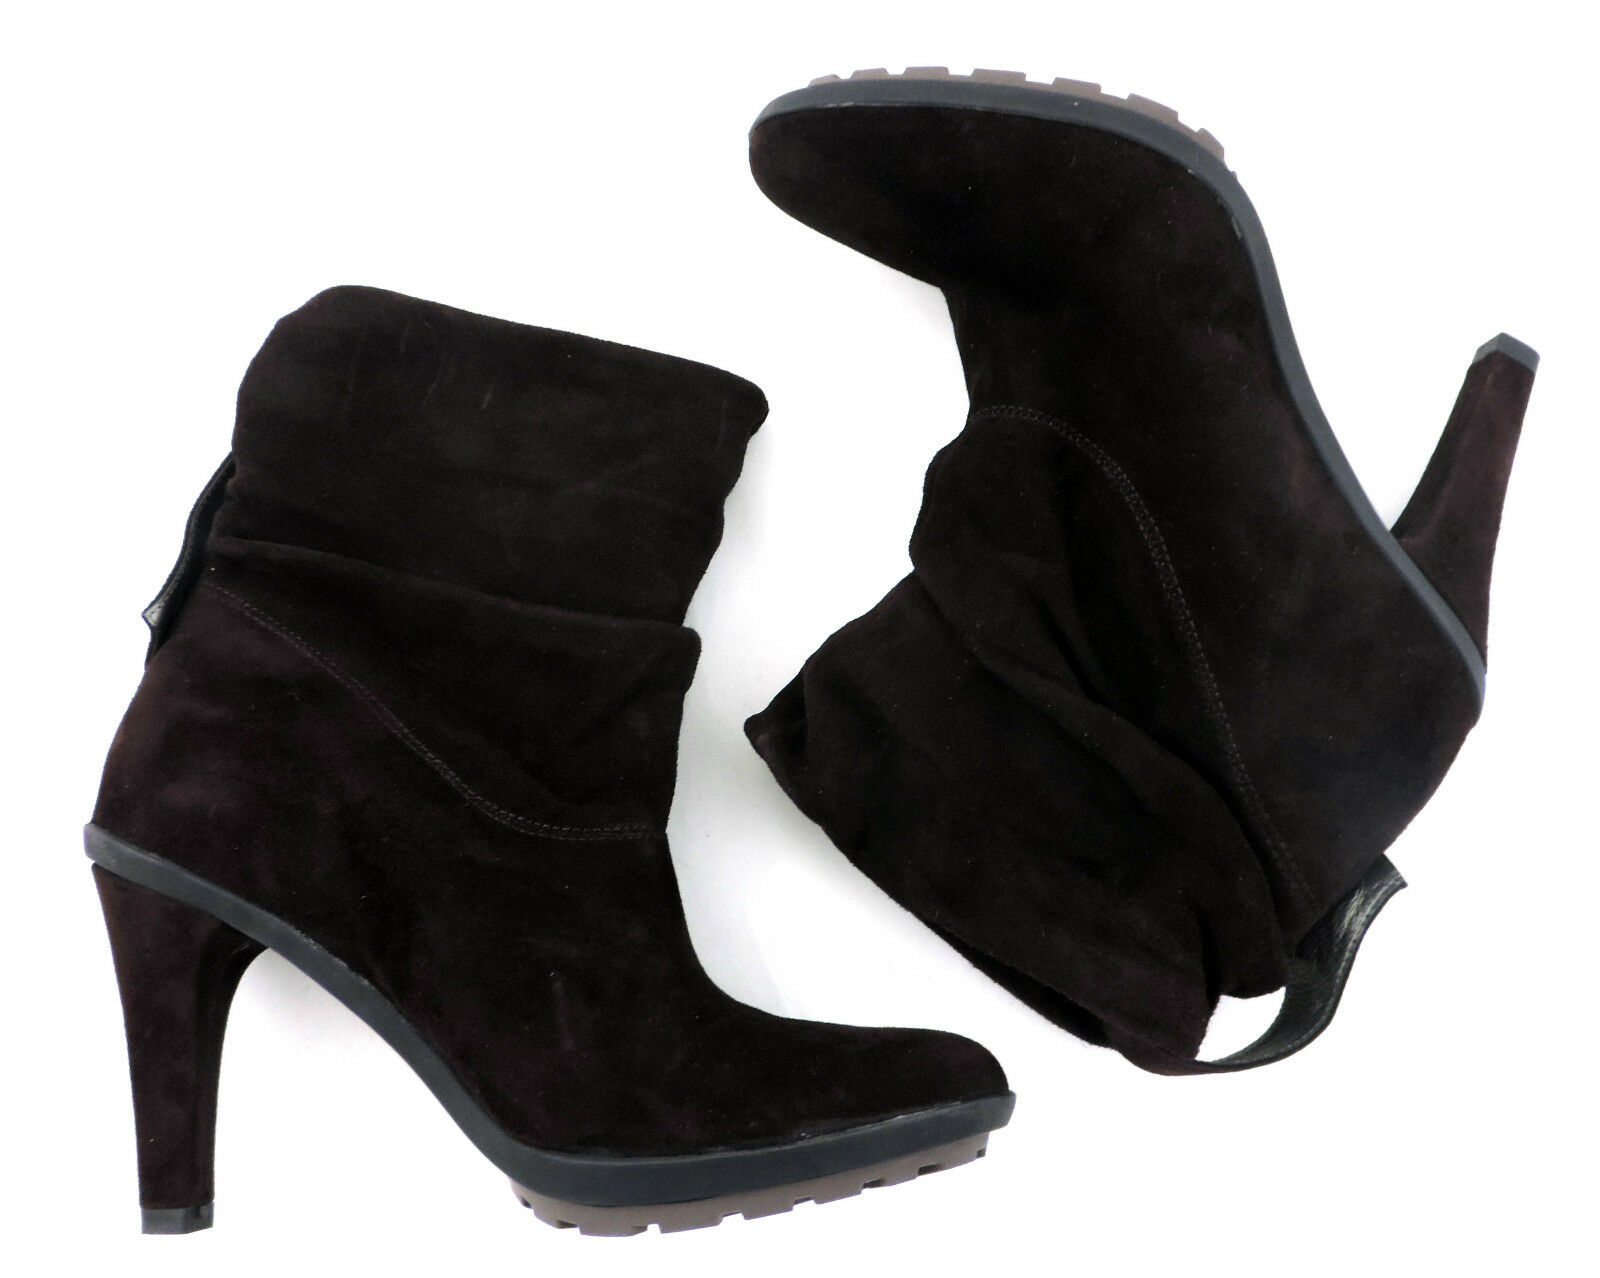 Navyboot Ankle Boot 37 Valerie Brown Suede Boots Like New